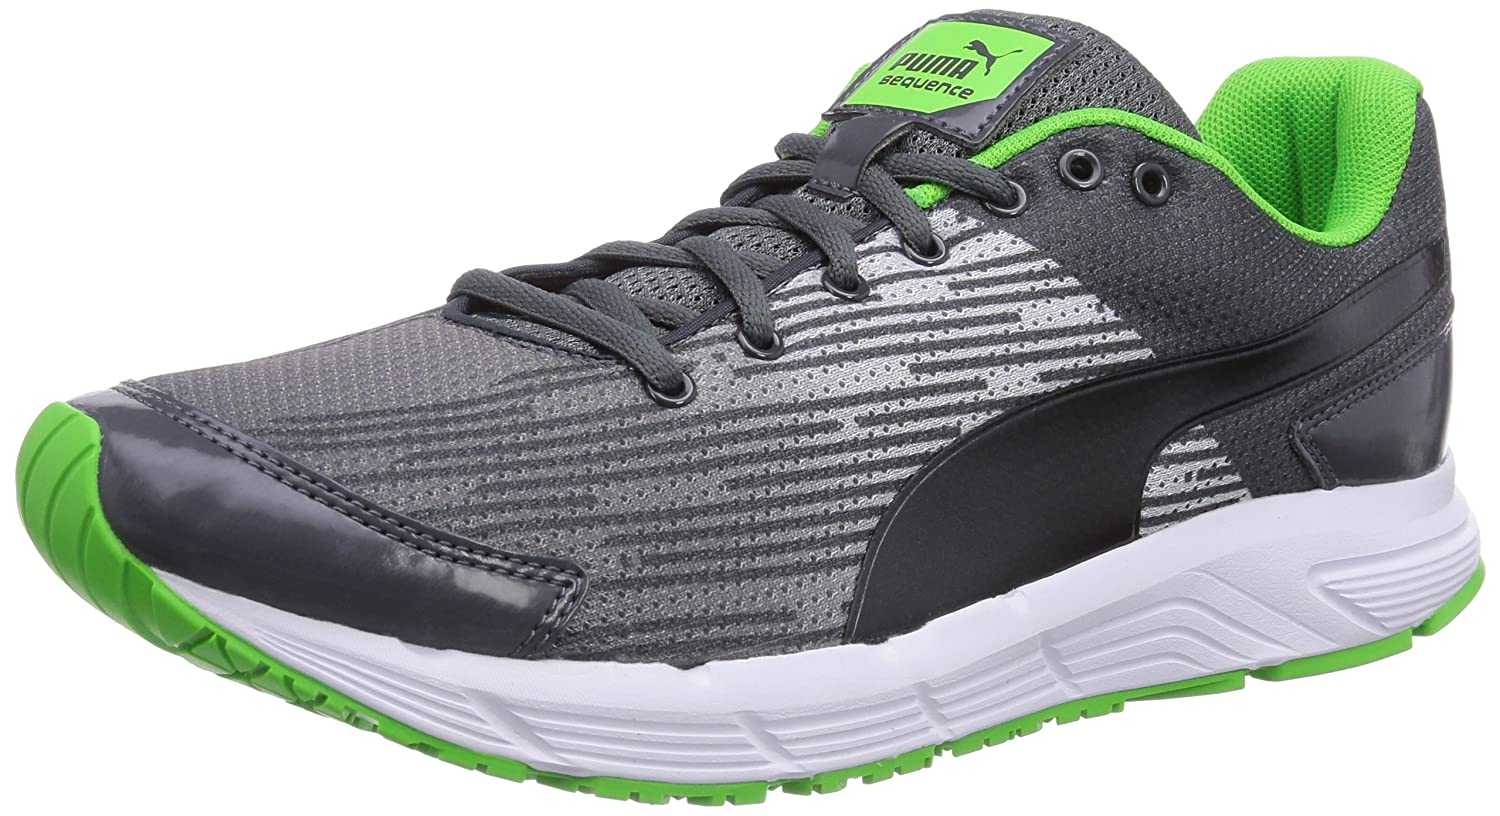 Mens Running Shoes | Training Shoes, Track Spikes More | PUMA